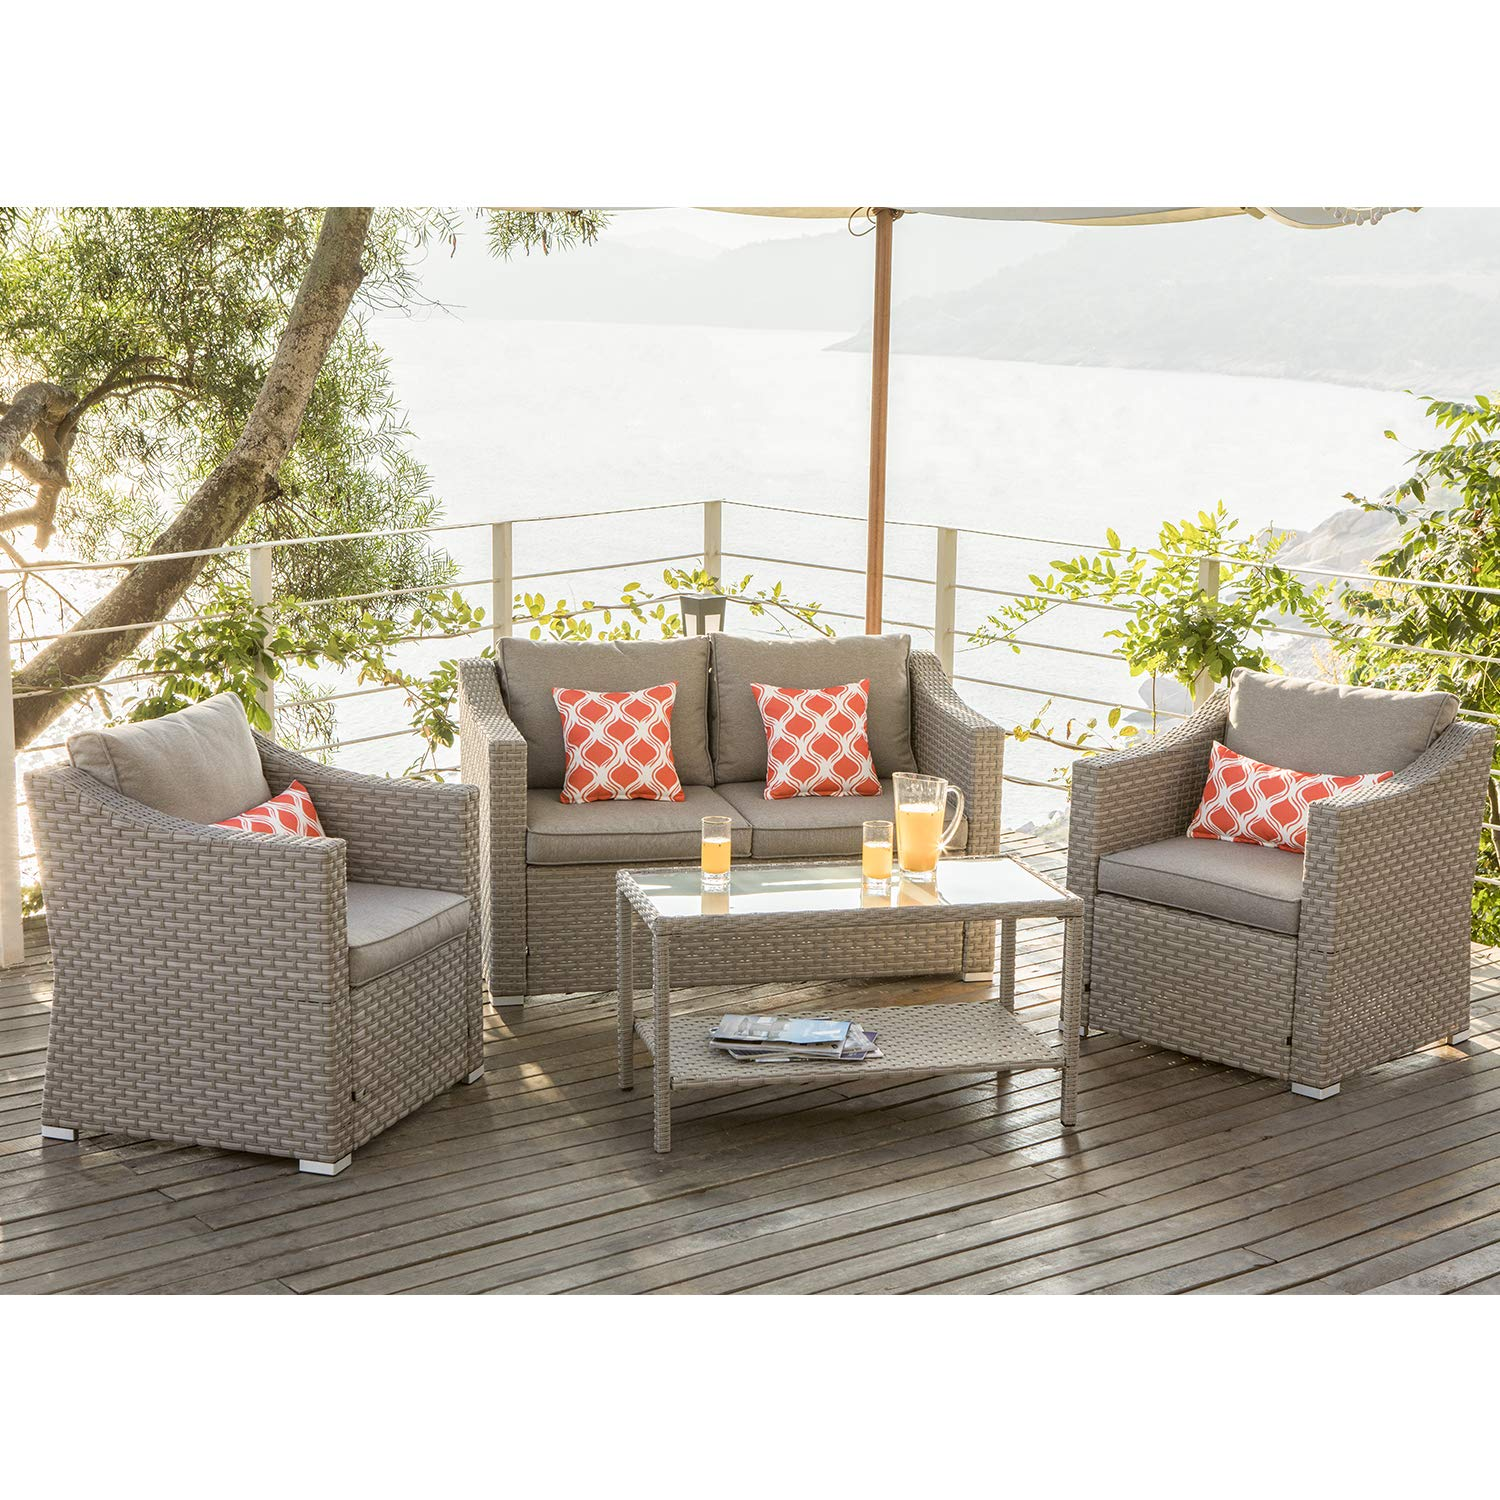 COSIEST 4-Piece Patio Furniture Sectional Sofa All-Weather Outdoor Wicker Conversation Set w Warm Gray Cushions, Glass Coffee Table, 4 Coral Pattern Pillows for Deck, Backyard, Pool